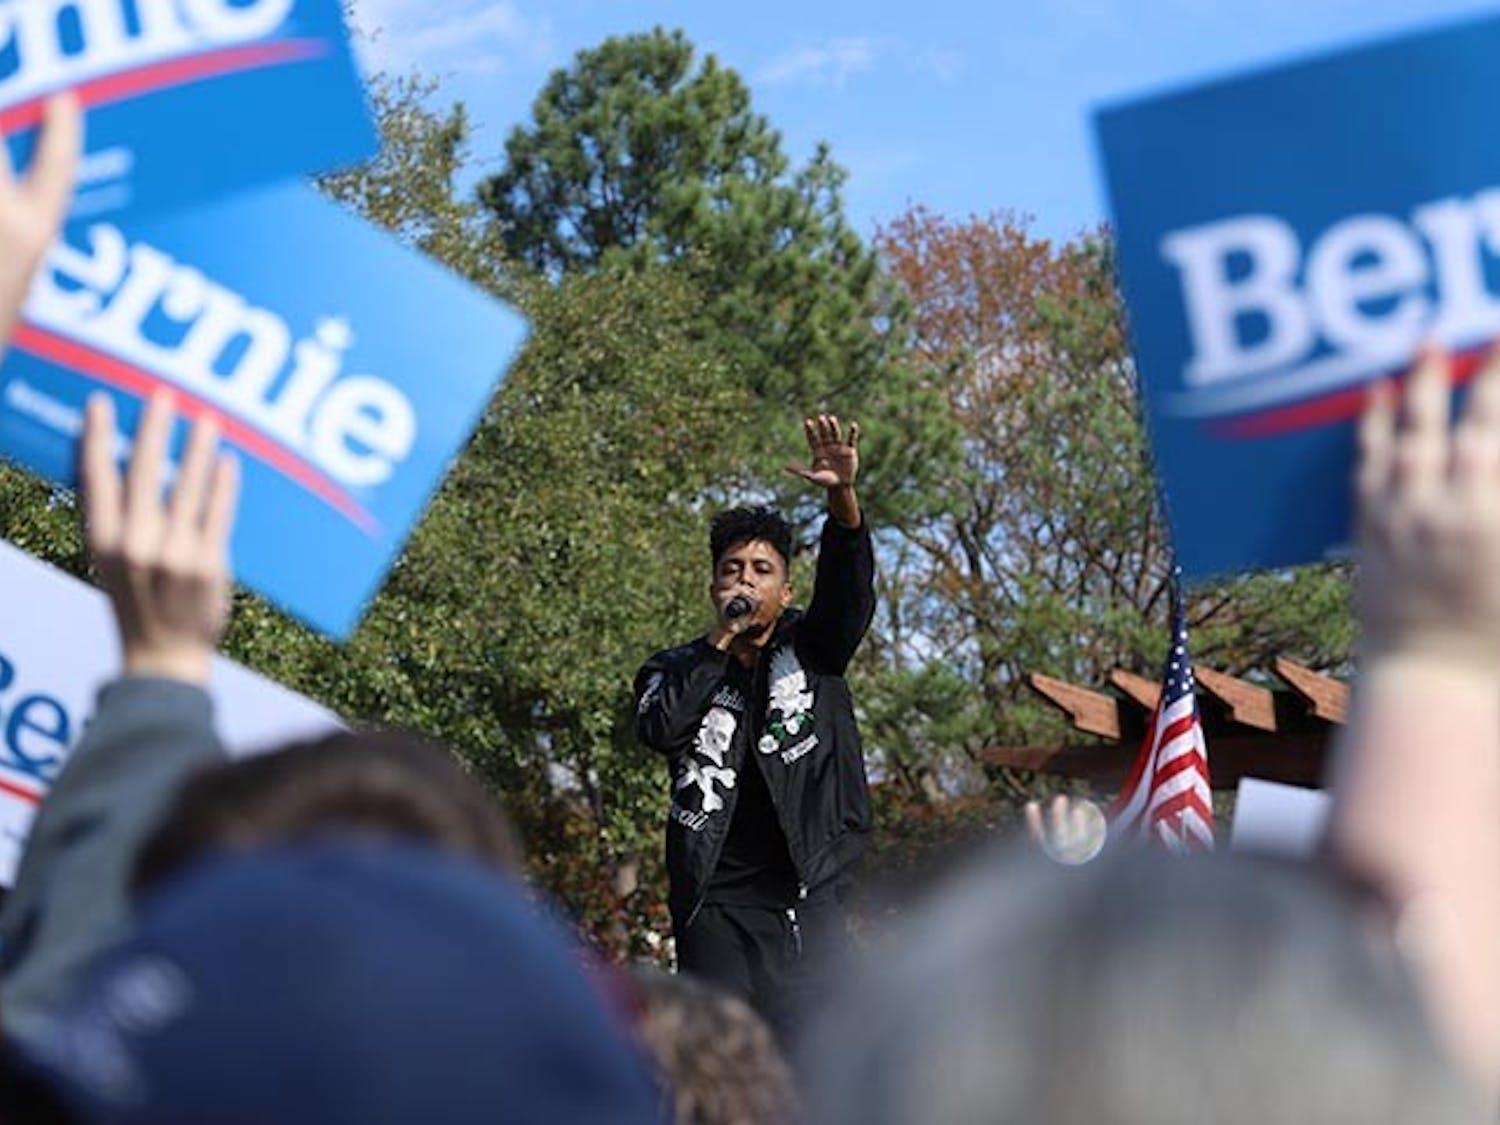 Southern hip-hop duo, Blackillac, comprised of emcees Zeale and Phranchyze, singing at Bernie Sanders' rally at Finlay Park in Columbia, South Carolina, on Feb. 28. The duo hails from Austin, Texas.